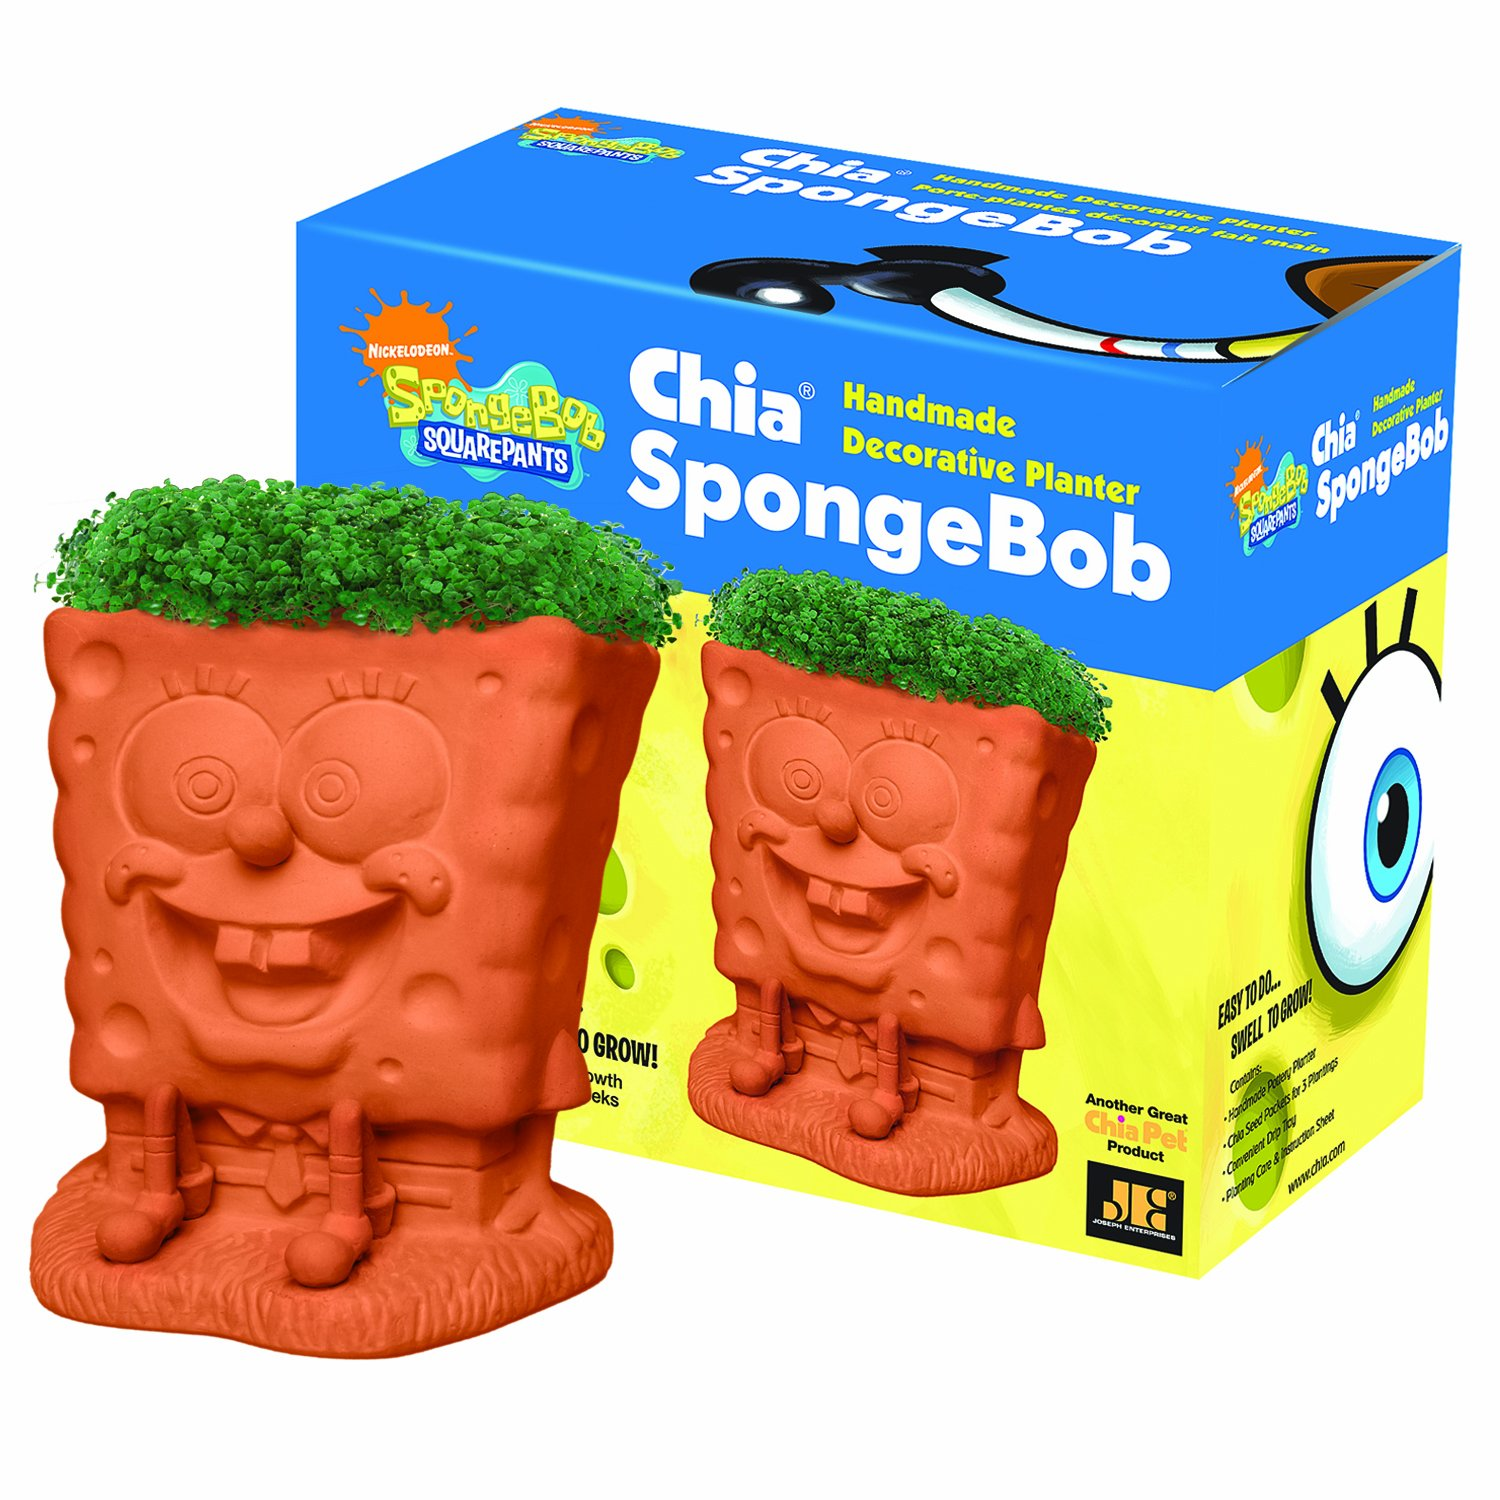 Buy Chia Spongebob Now!